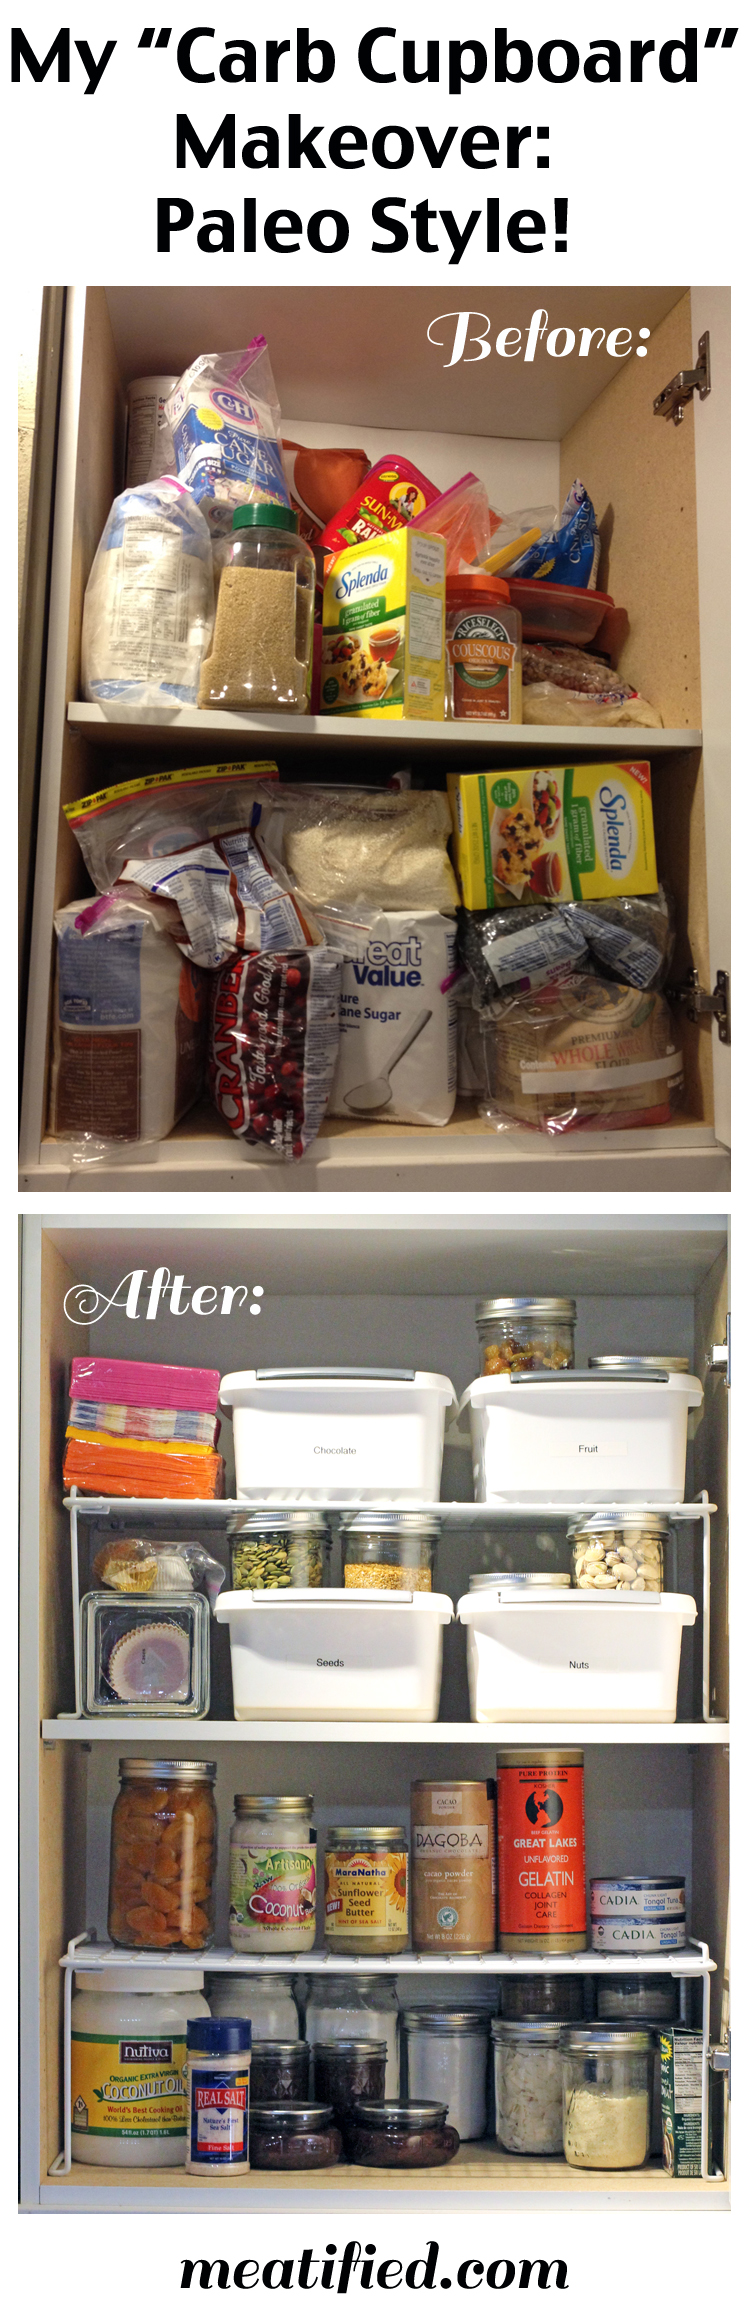 My Paleo Pantry Makeover, Part 1: The Baking Cupboard | http://meatified.com